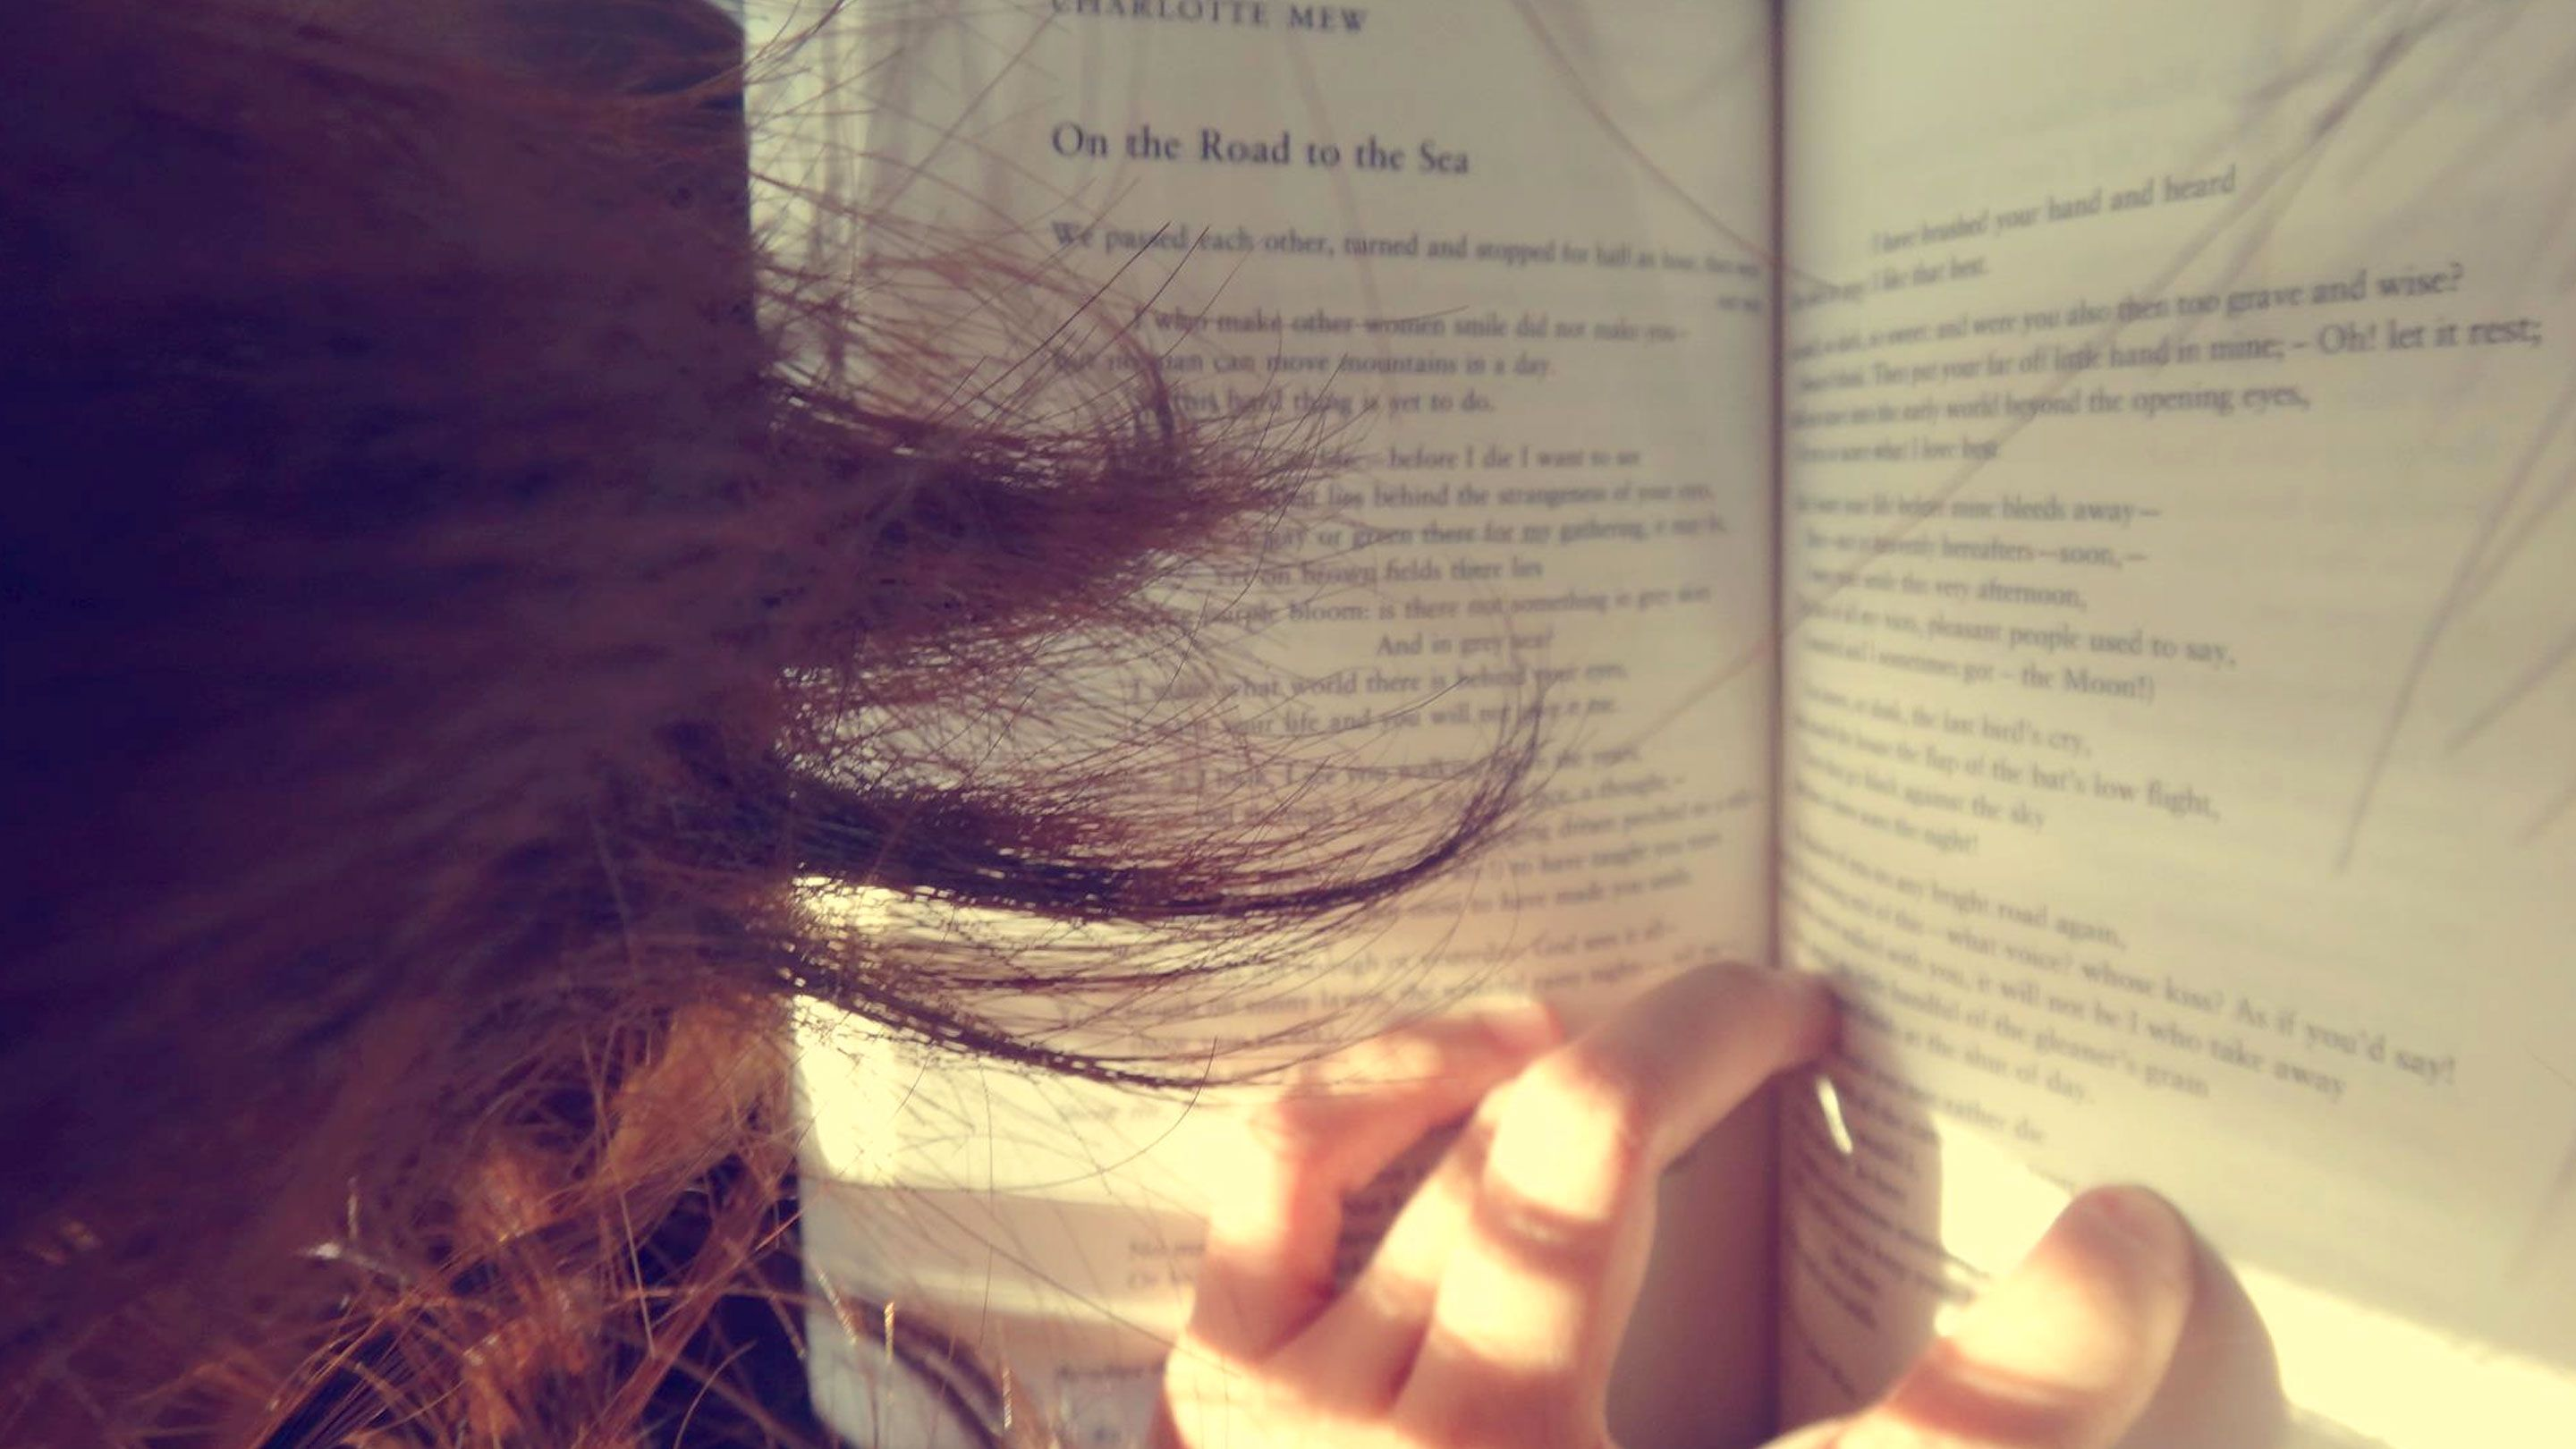 Photograph of an open book of poetry shot over the shoulder of a person with long hair